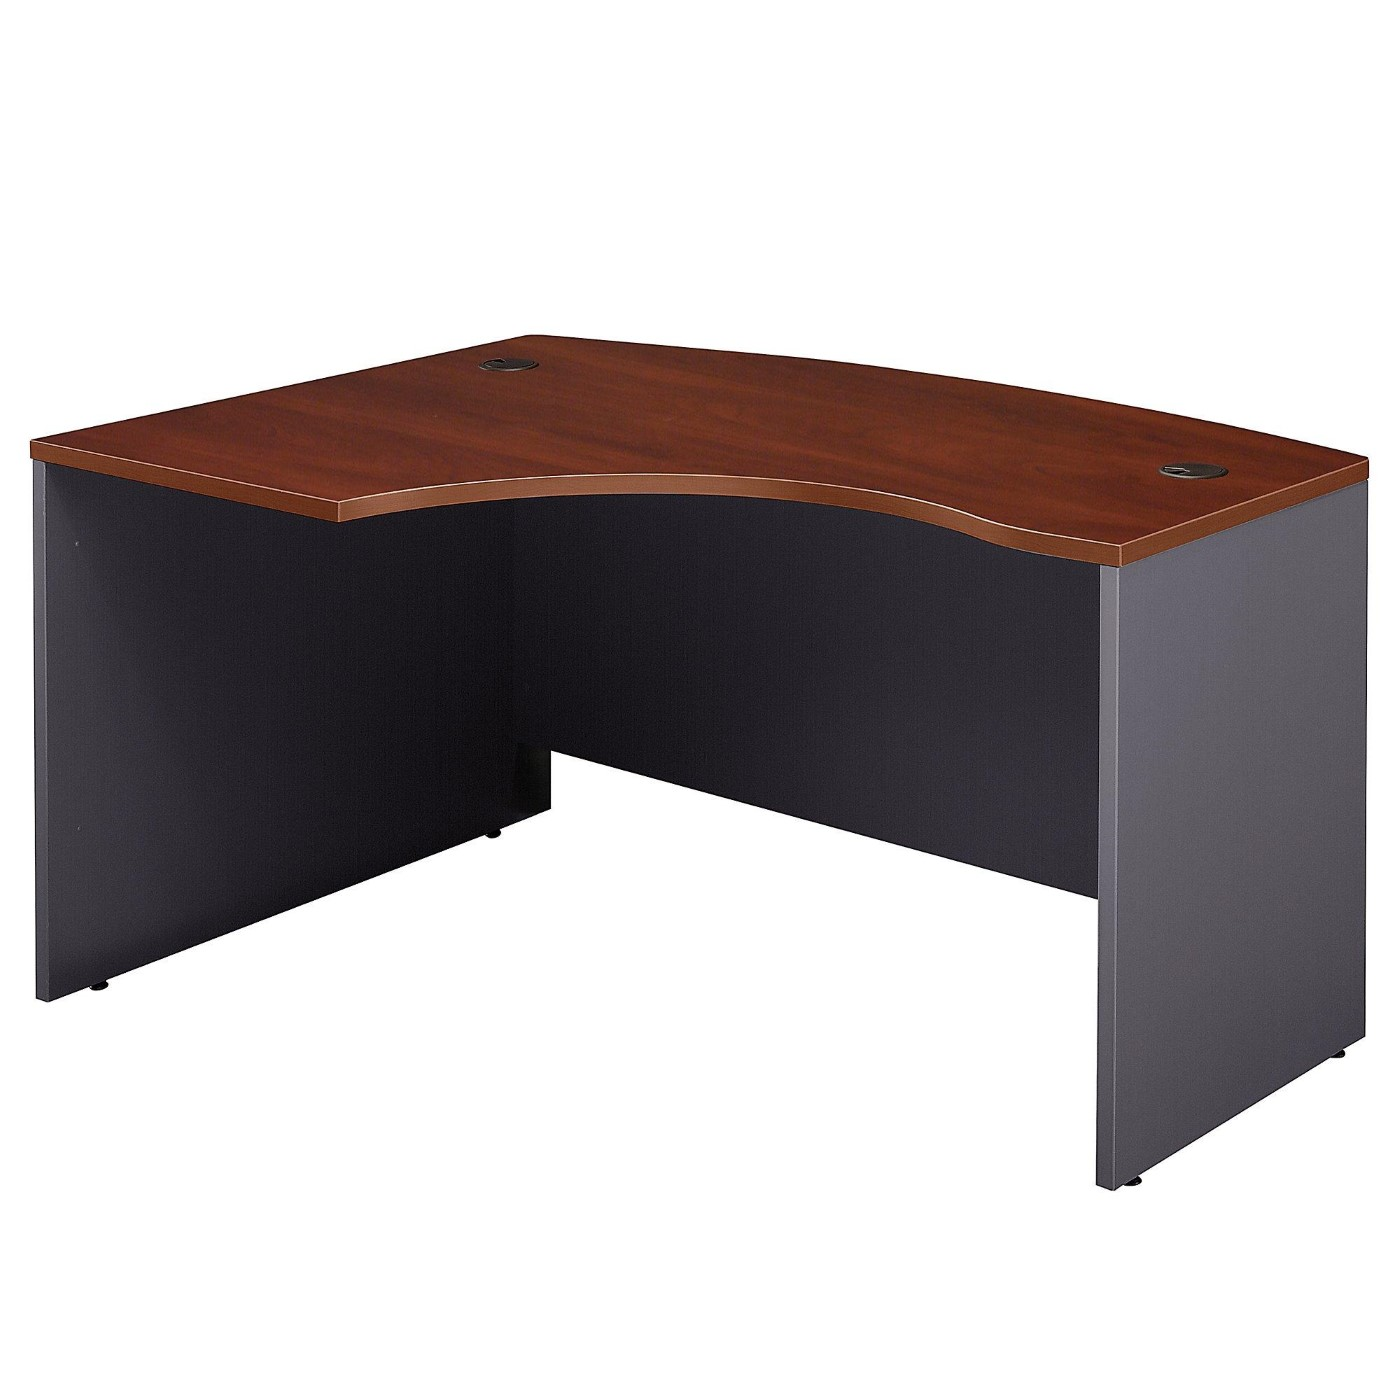 BUSH BUSINESS FURNITURE SERIES C 60W X 43D RIGHT HANDED L BOW DESK. FREE SHIPPING</font></b></font>&#x1F384<font color=red><b>ERGONOMICHOME HOLIDAY SALE - ENDS DEC. 17, 2019</b></font>&#x1F384